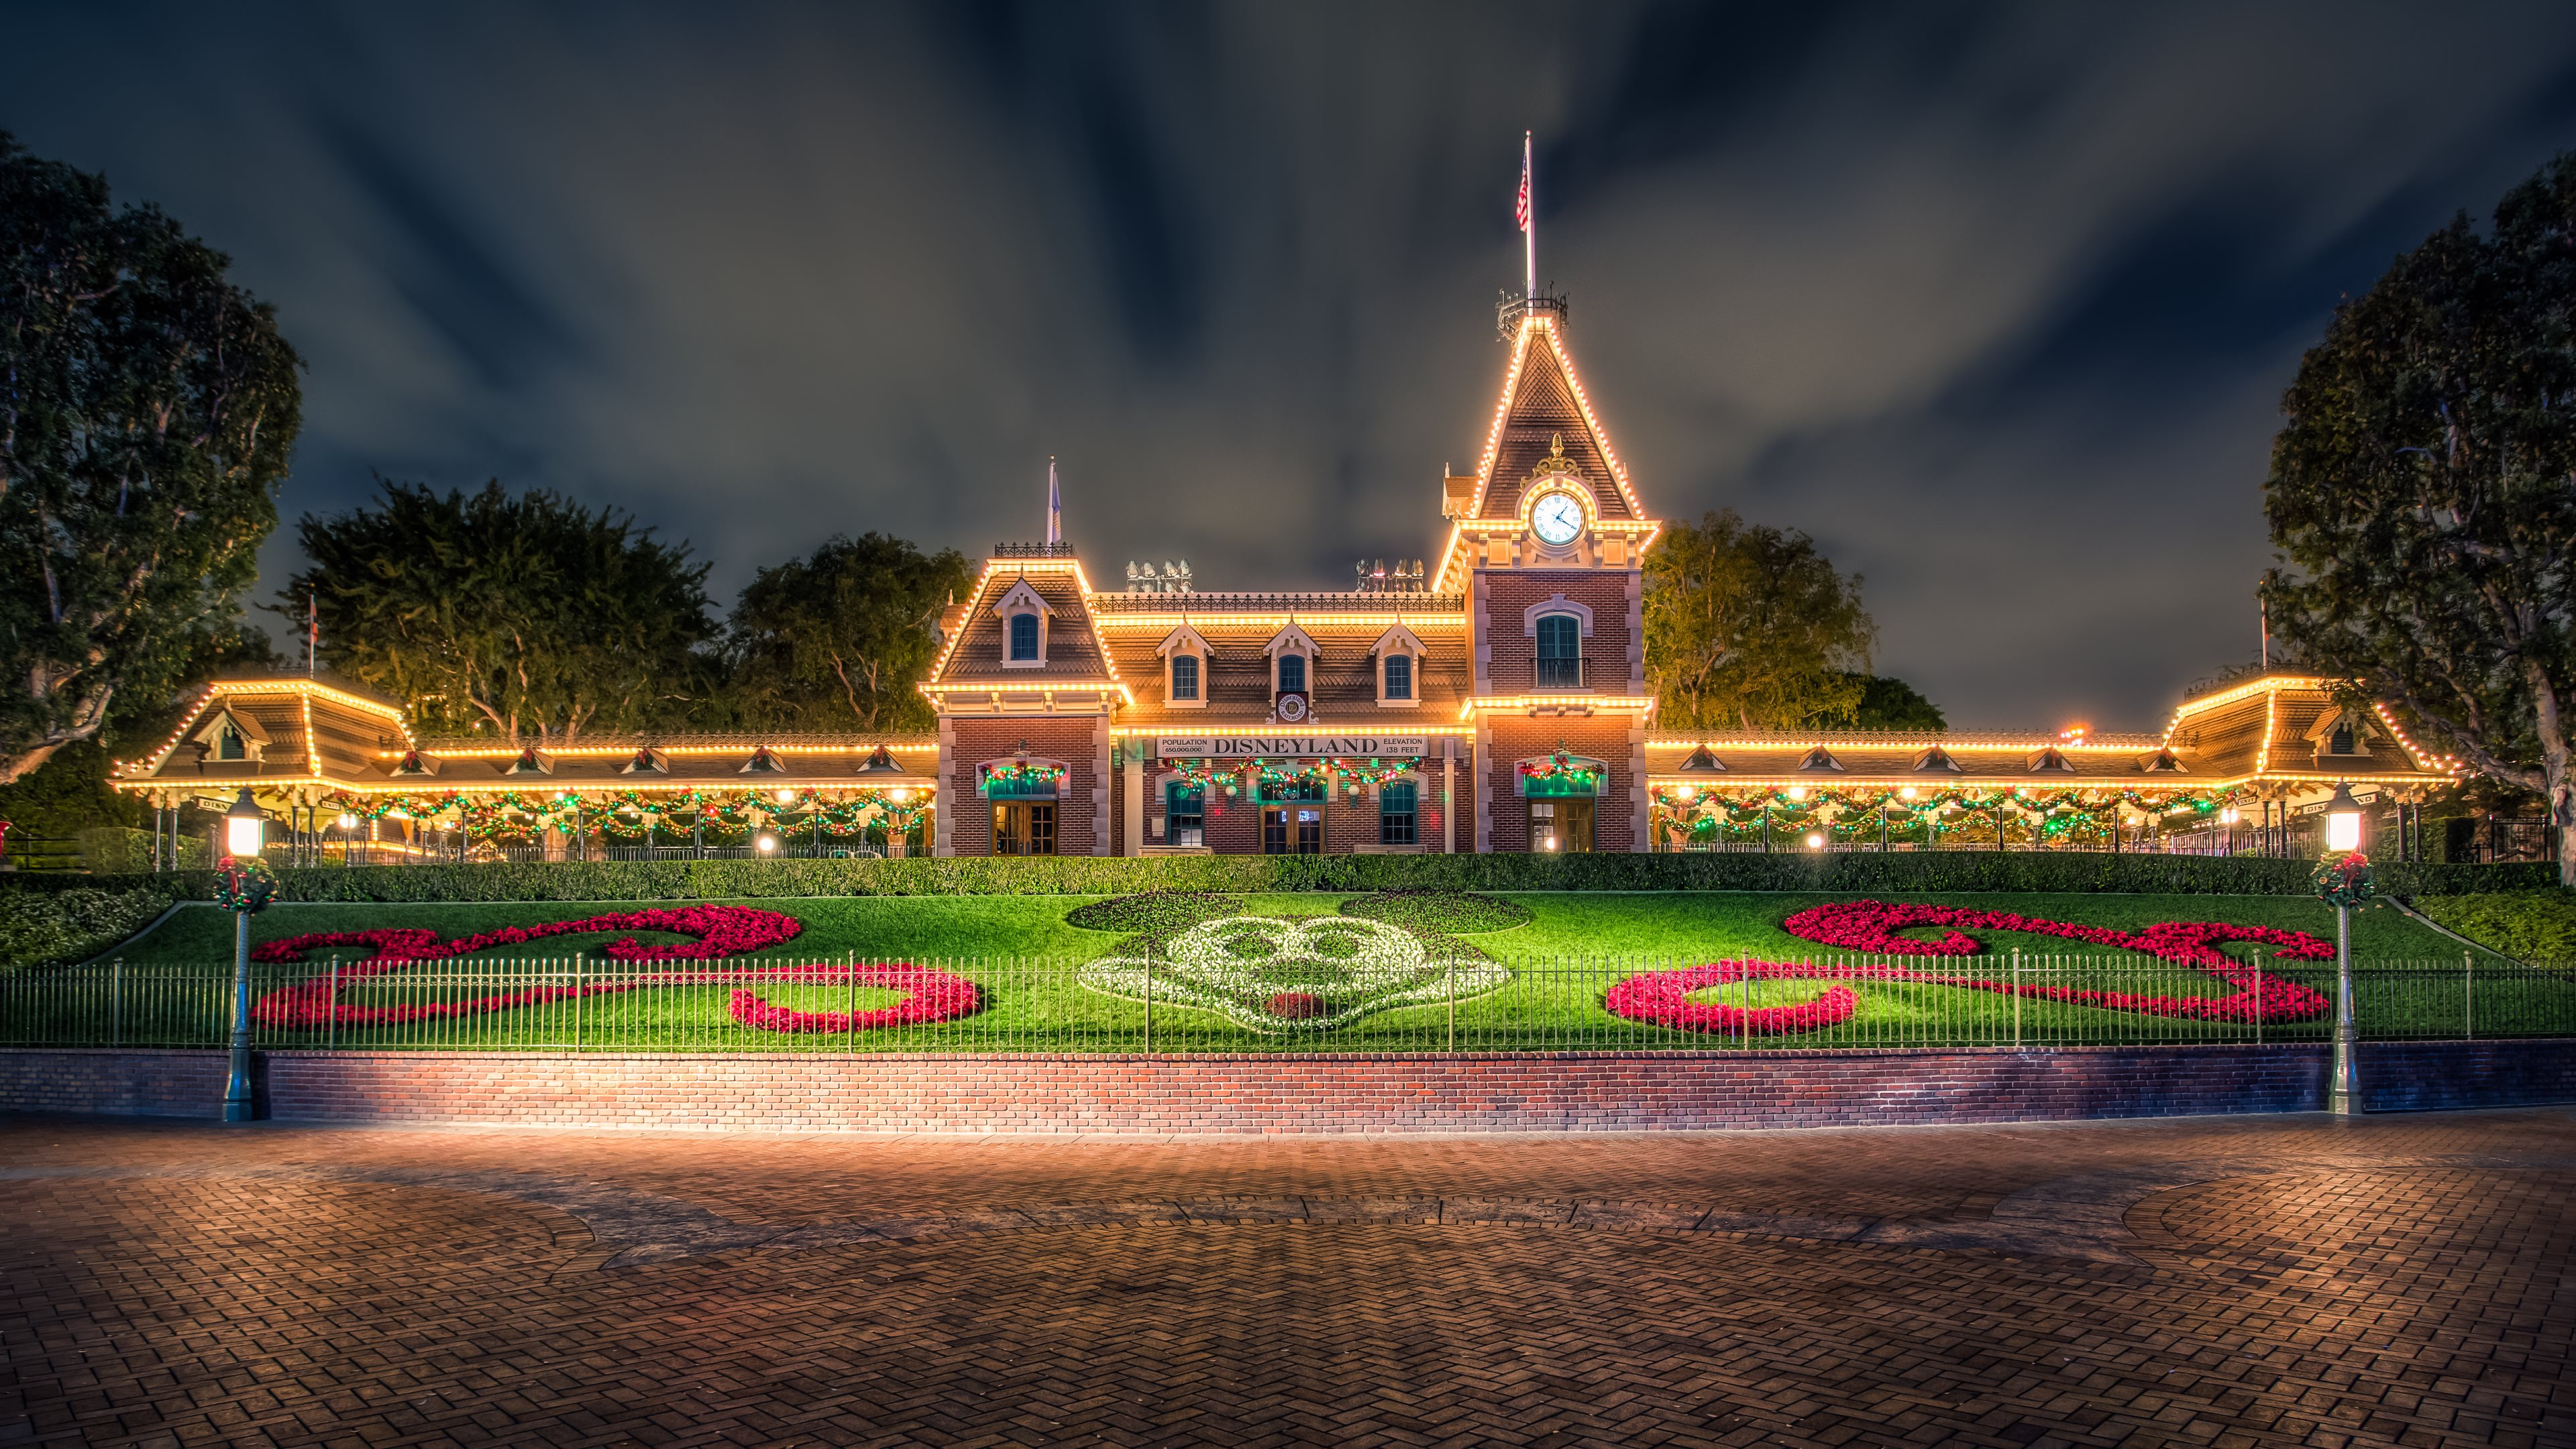 Disneyland Computer Wallpapers Desktop Backgrounds 3840x2160 ID 3840x2160